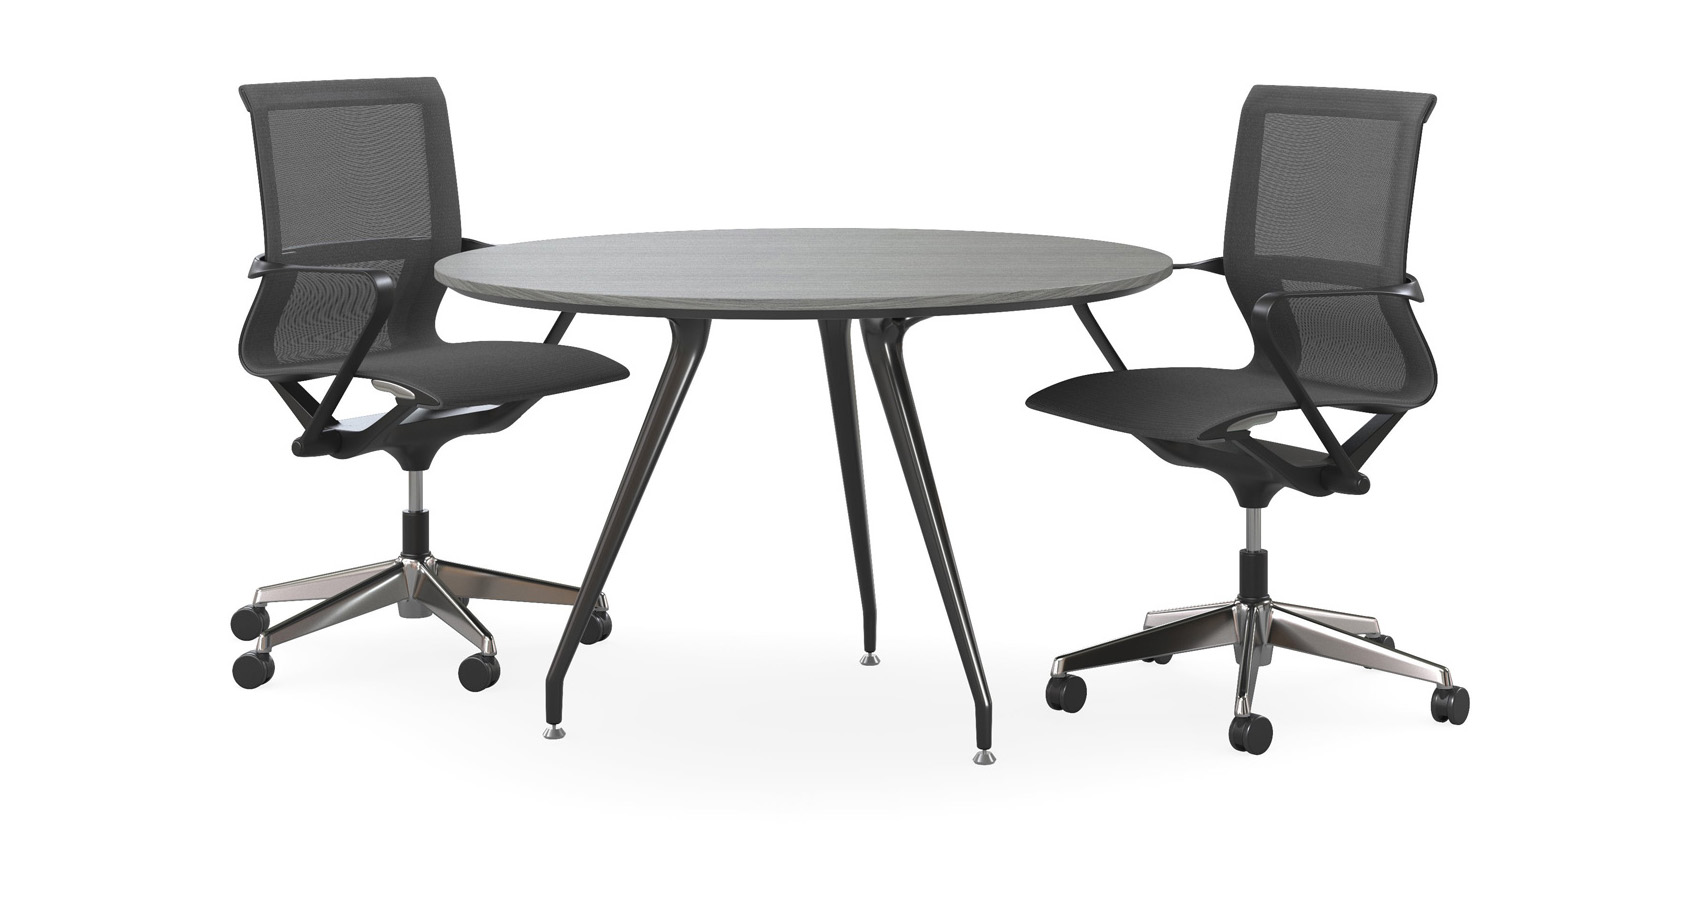 Velo Round Conference Table with Zed chairs